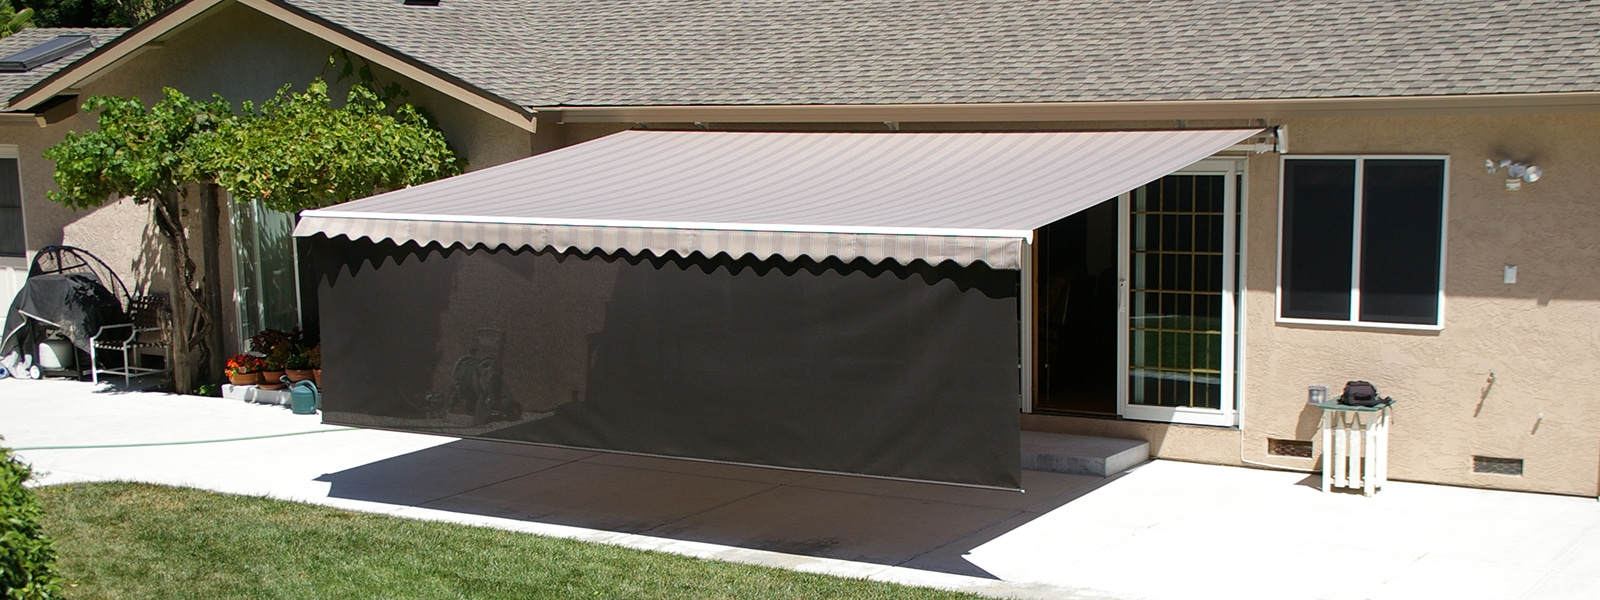 Retractable Awning Columbia